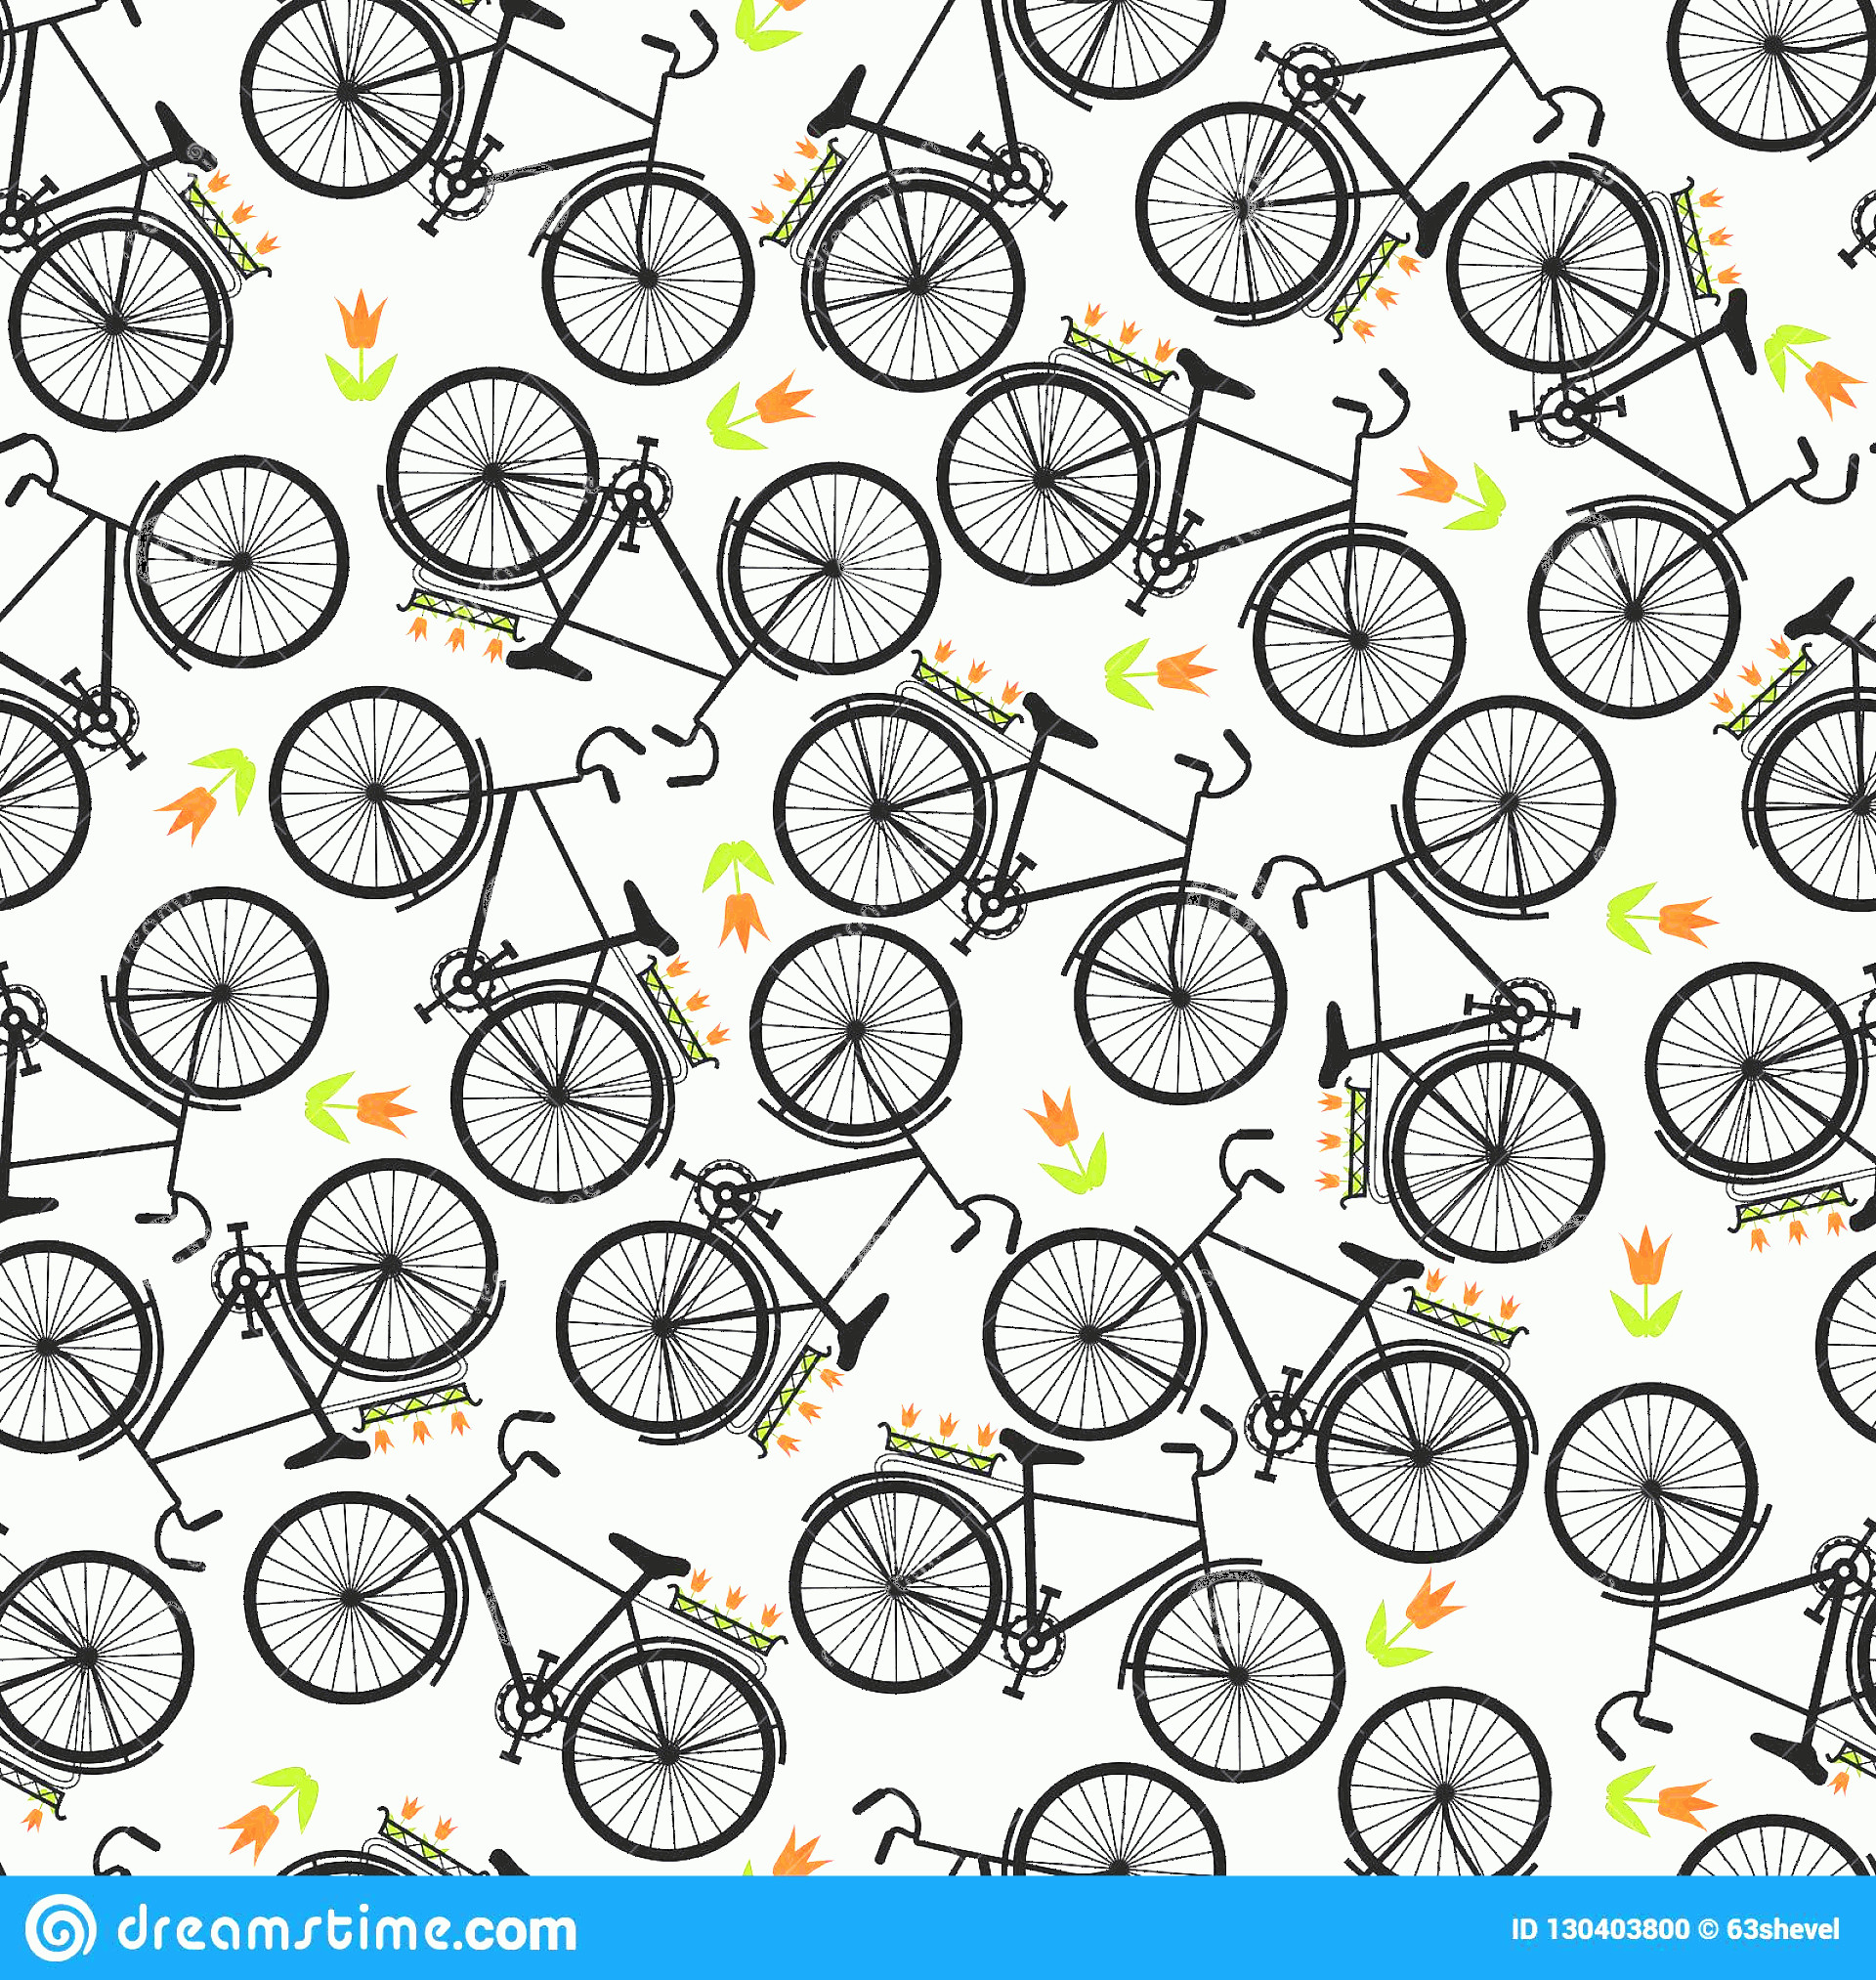 Bicycle Vector Artwork Of Patterns: Illustration Bicycle Riding Vector Seamless Pattern Bicycles Colored Image